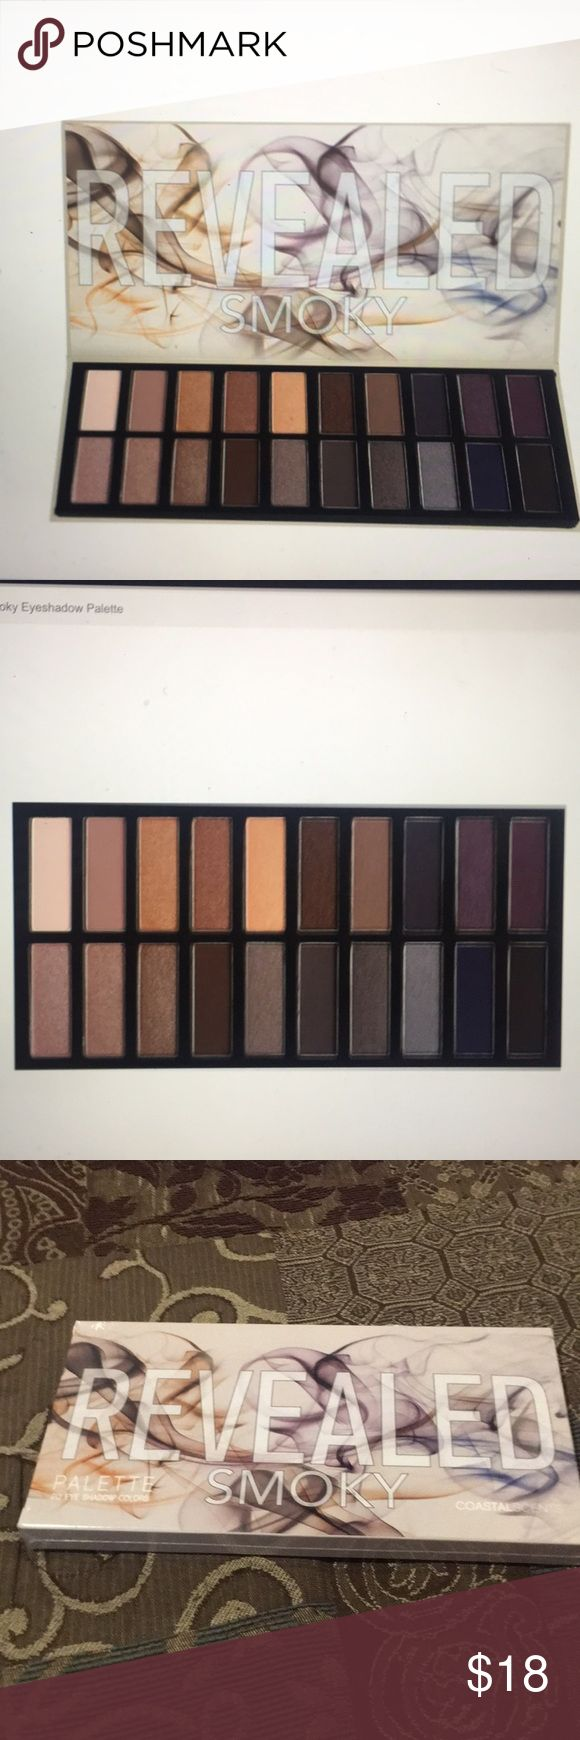 🆕Coastal Scents Revealed Smoky Eye Palette🆕 🆕Coastal Scents Revealed Smoky Eye Palette; 20 sultry, smoldering shadows in a variety of hues and textures🆕 NEW LISTING 1/24 Coastal Scents Makeup Eyeshadow